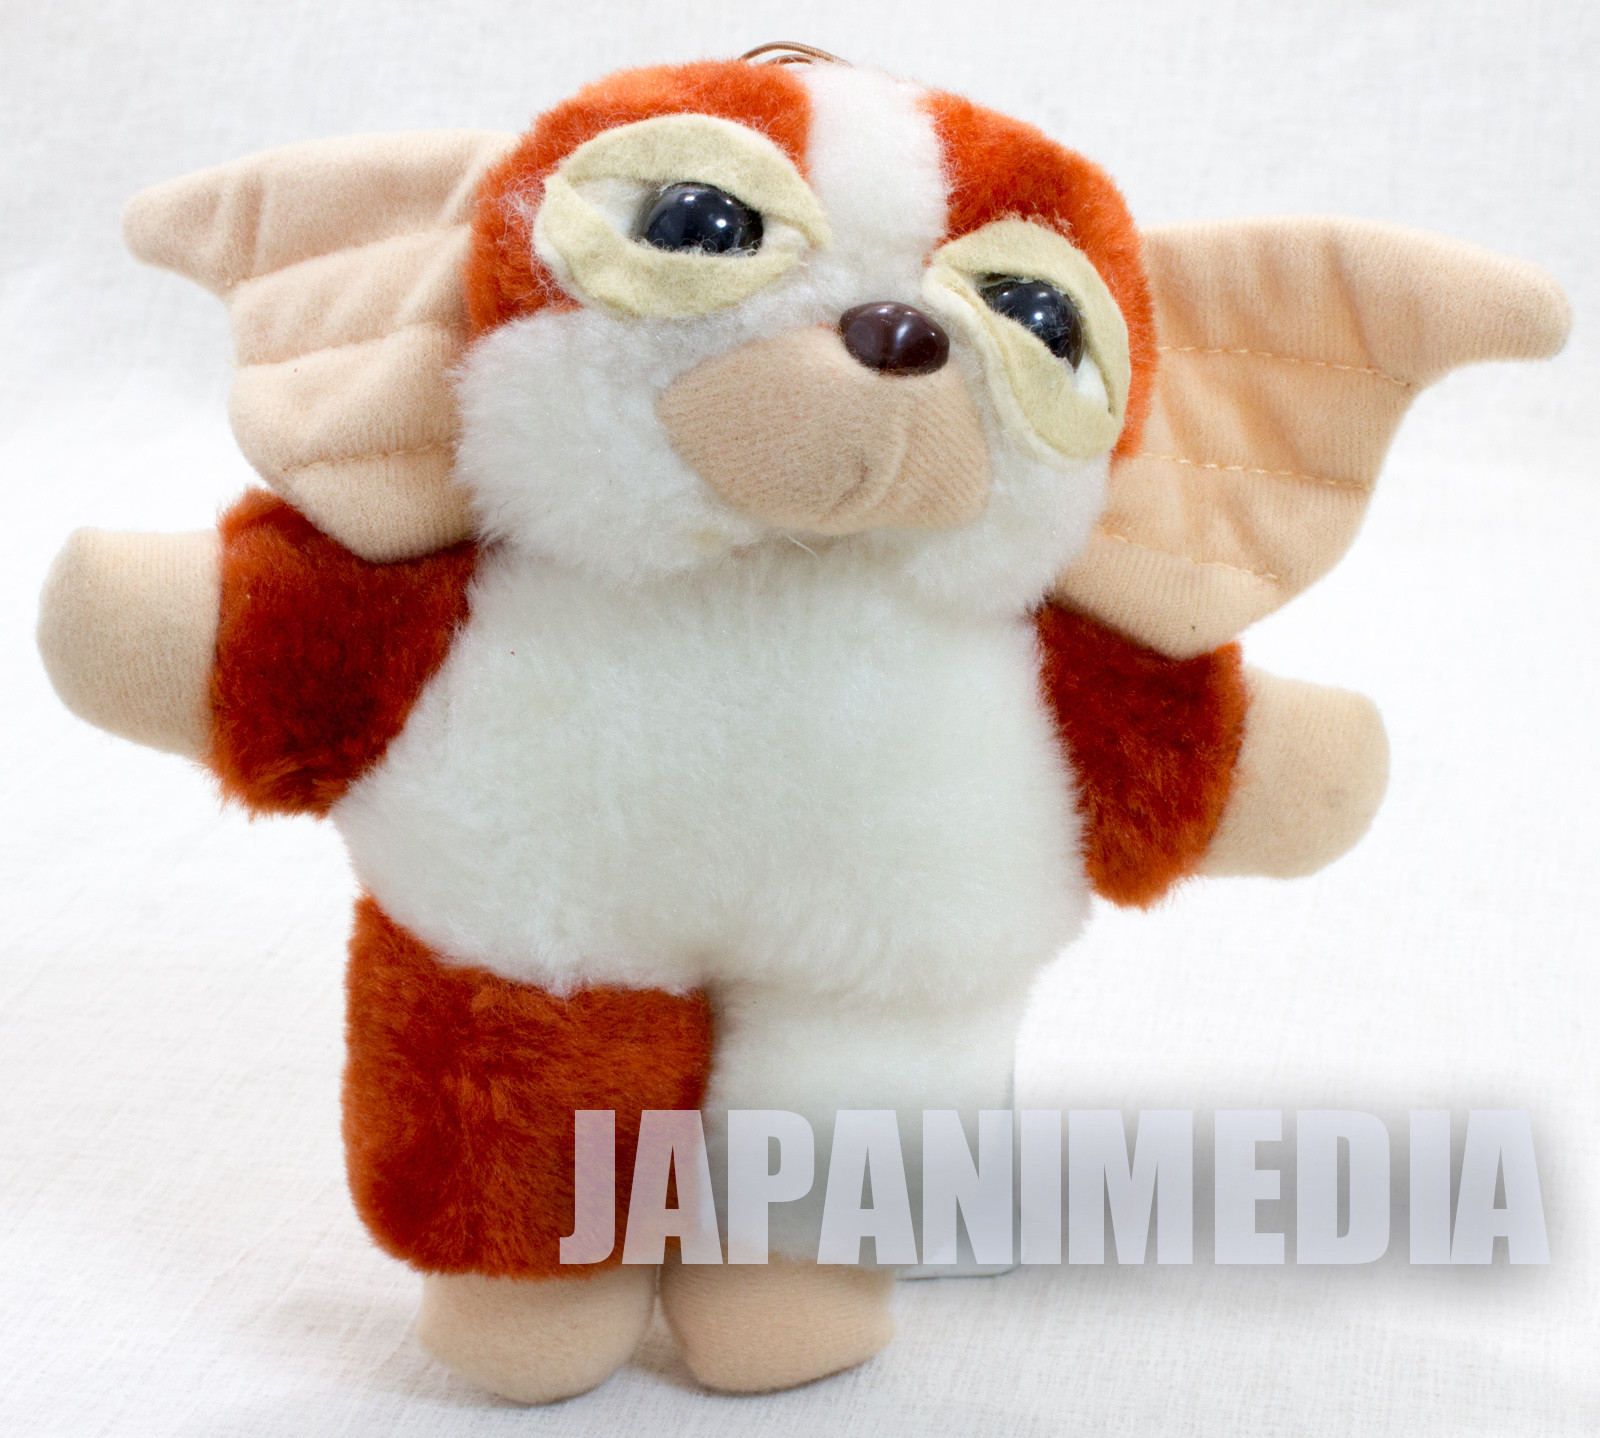 Retro Gremlins 2 The New Batch Daffy Plush Doll SEGA 1991 JAPAN